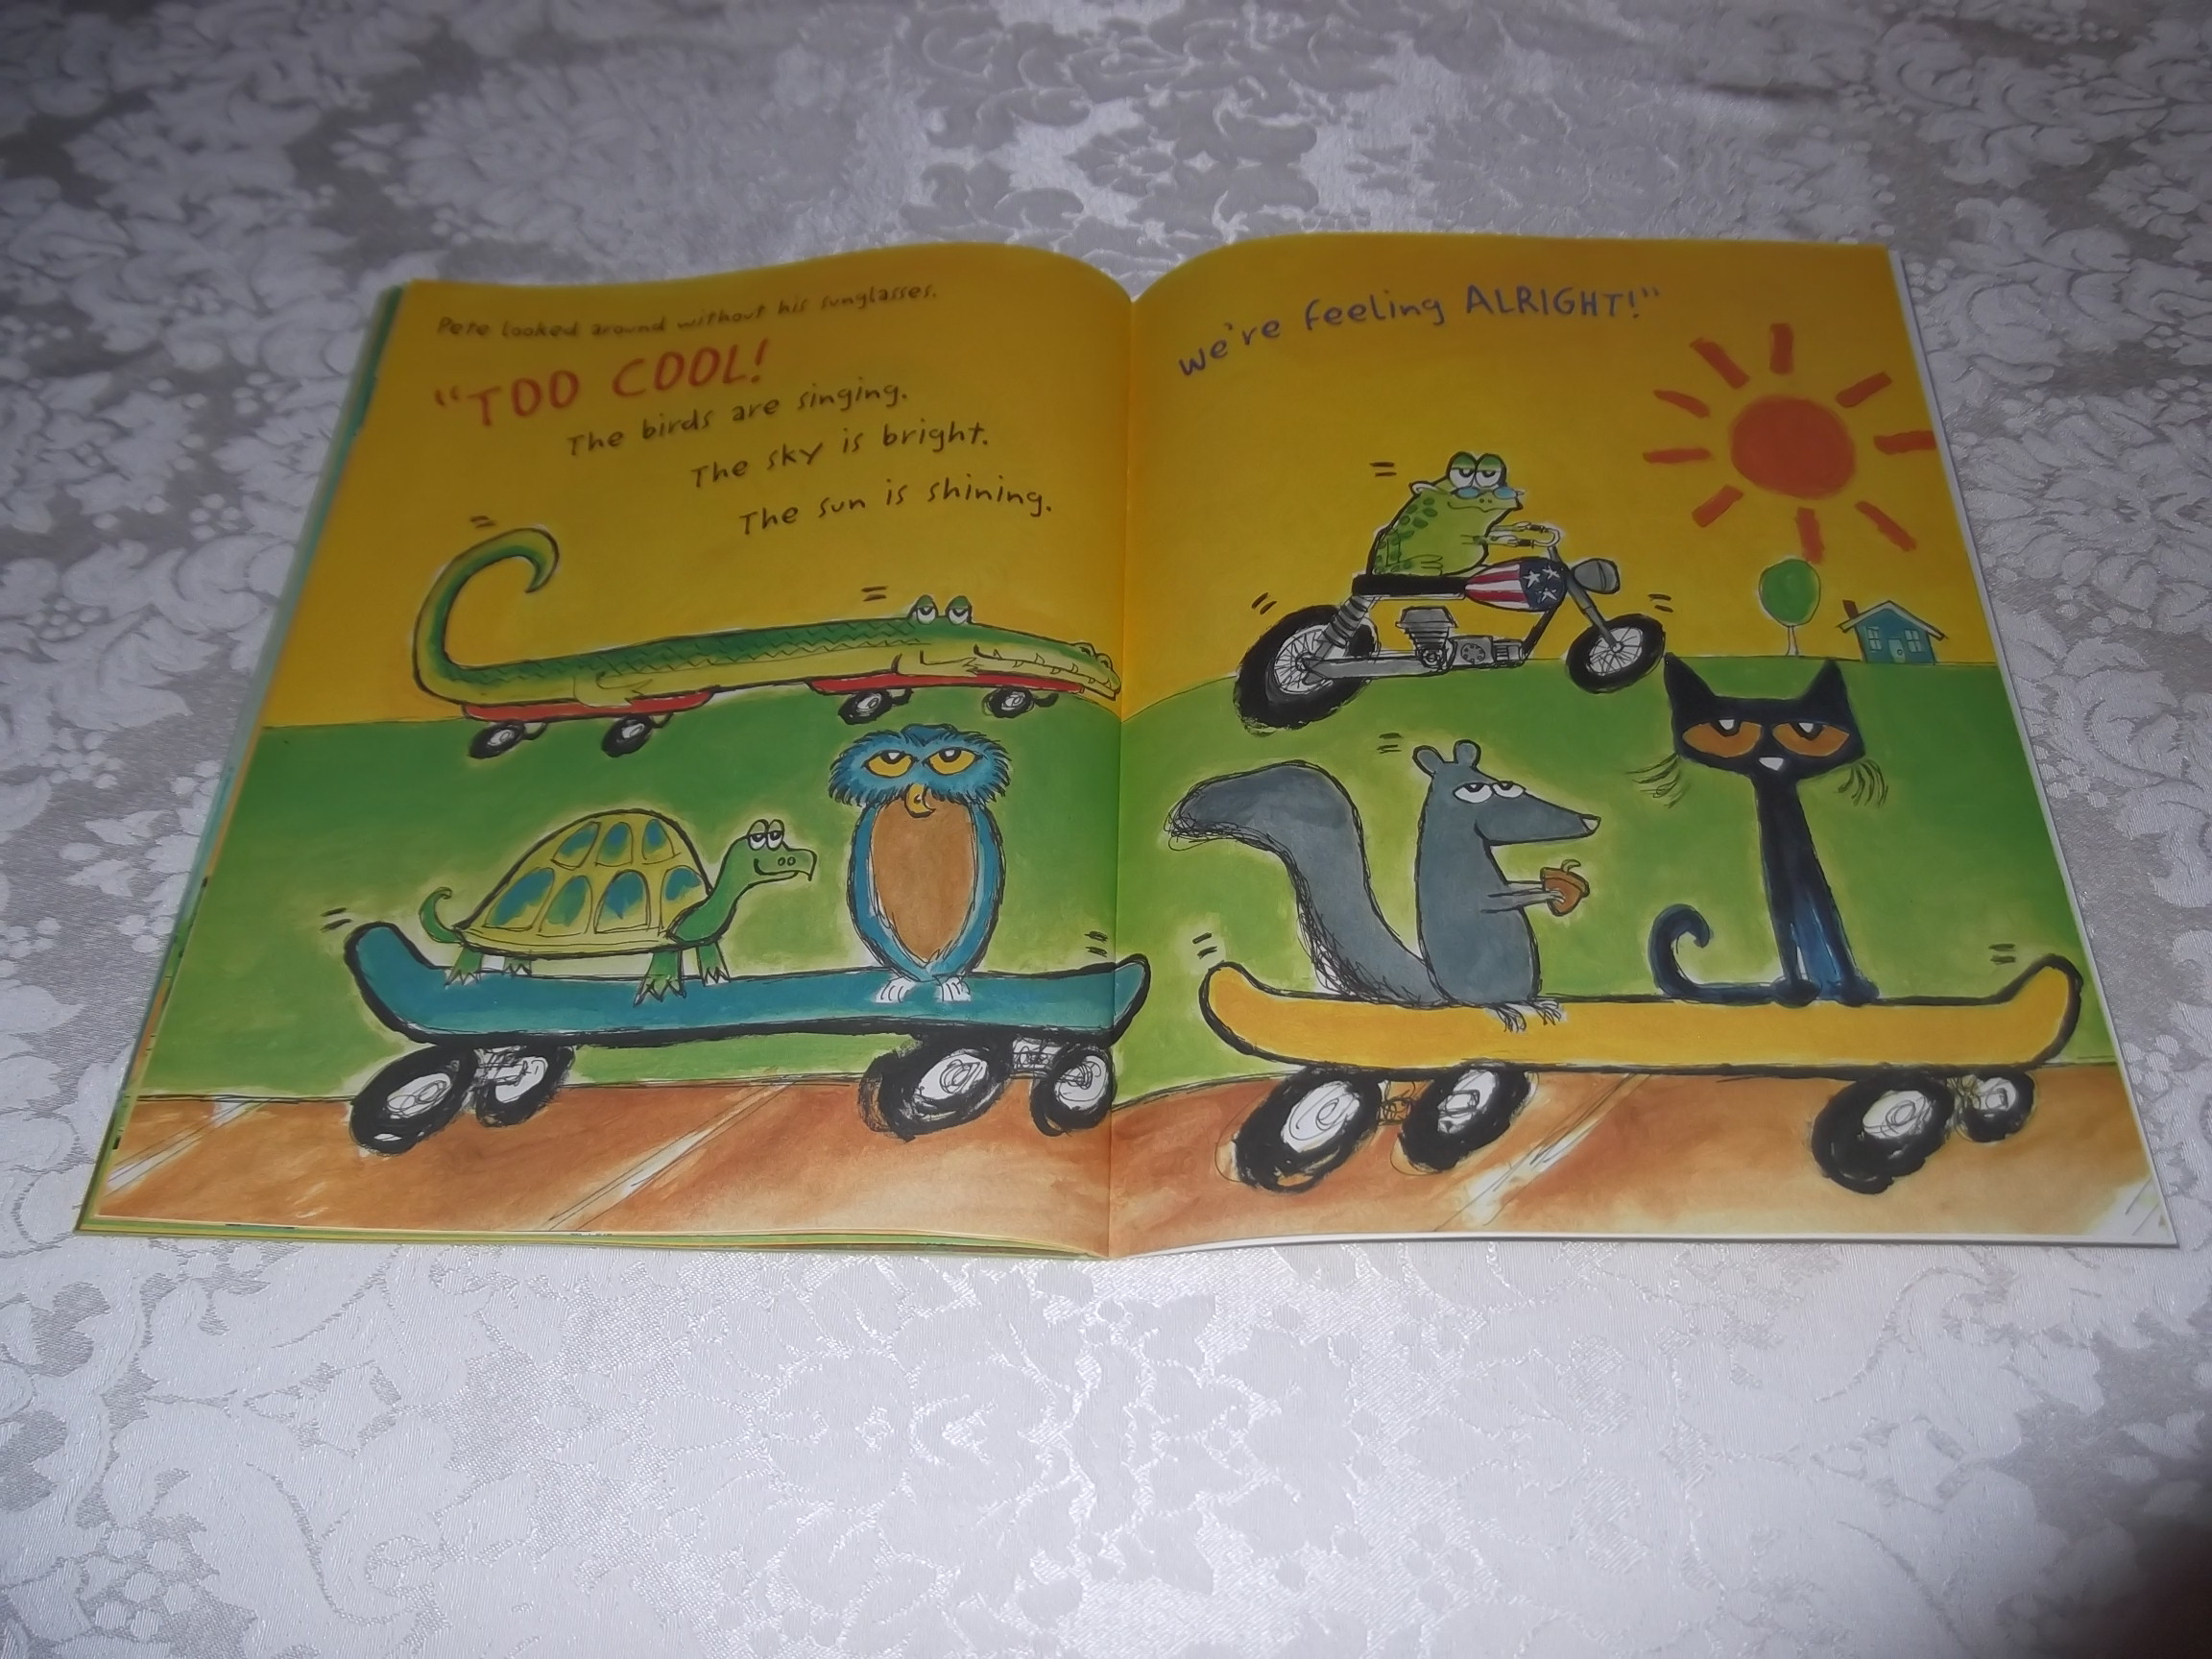 Image 10 of Pete the Cat and His Magic Sunglasses Kimberly and James Dean Brand New SC